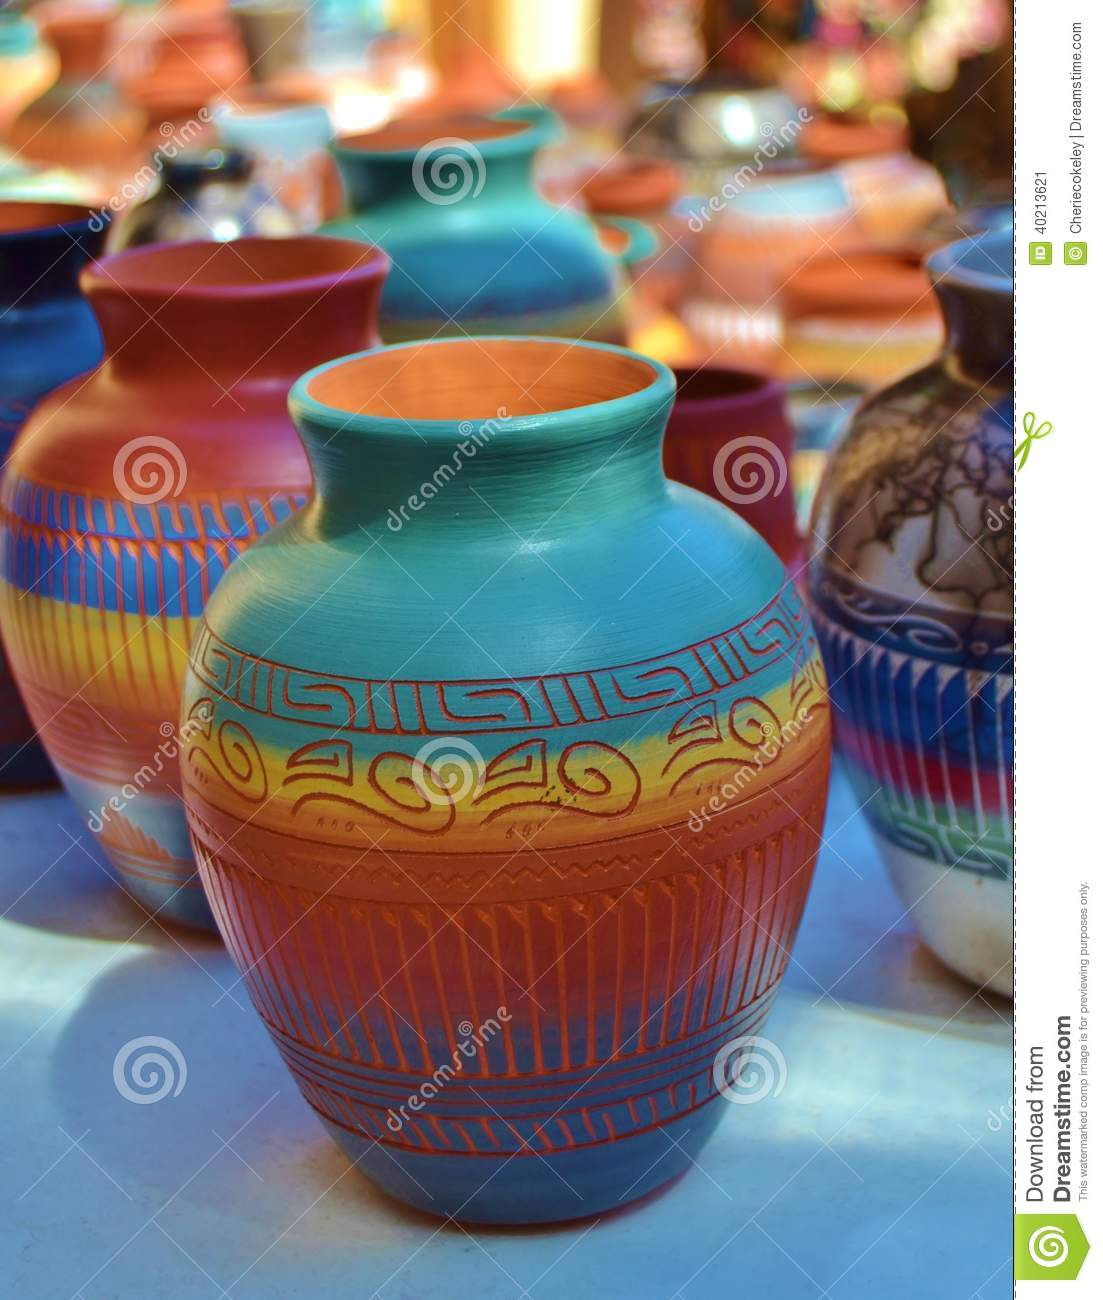 Southwest colorful ceramic and clay pottery stock image for Pottery designs with clay